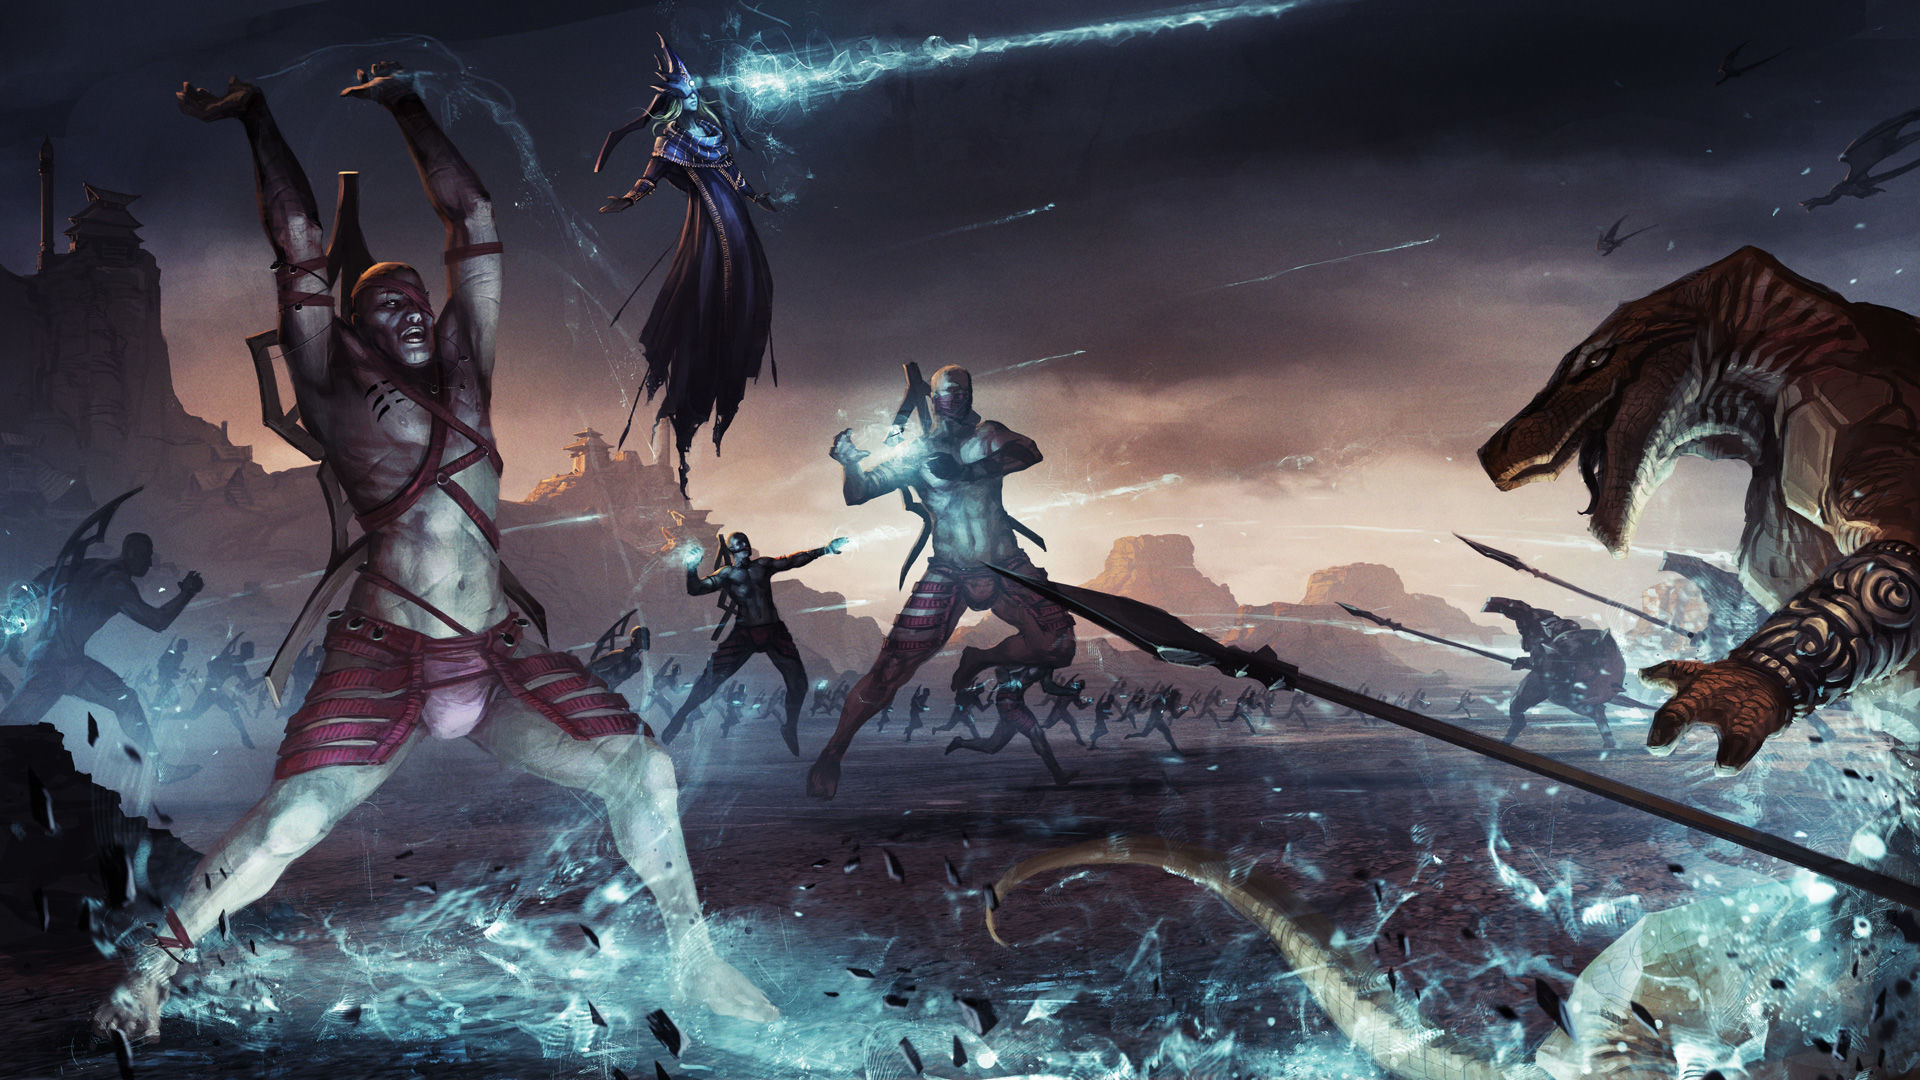 endless-legend-dragon-fight-jpg.jpg - Endless Legend